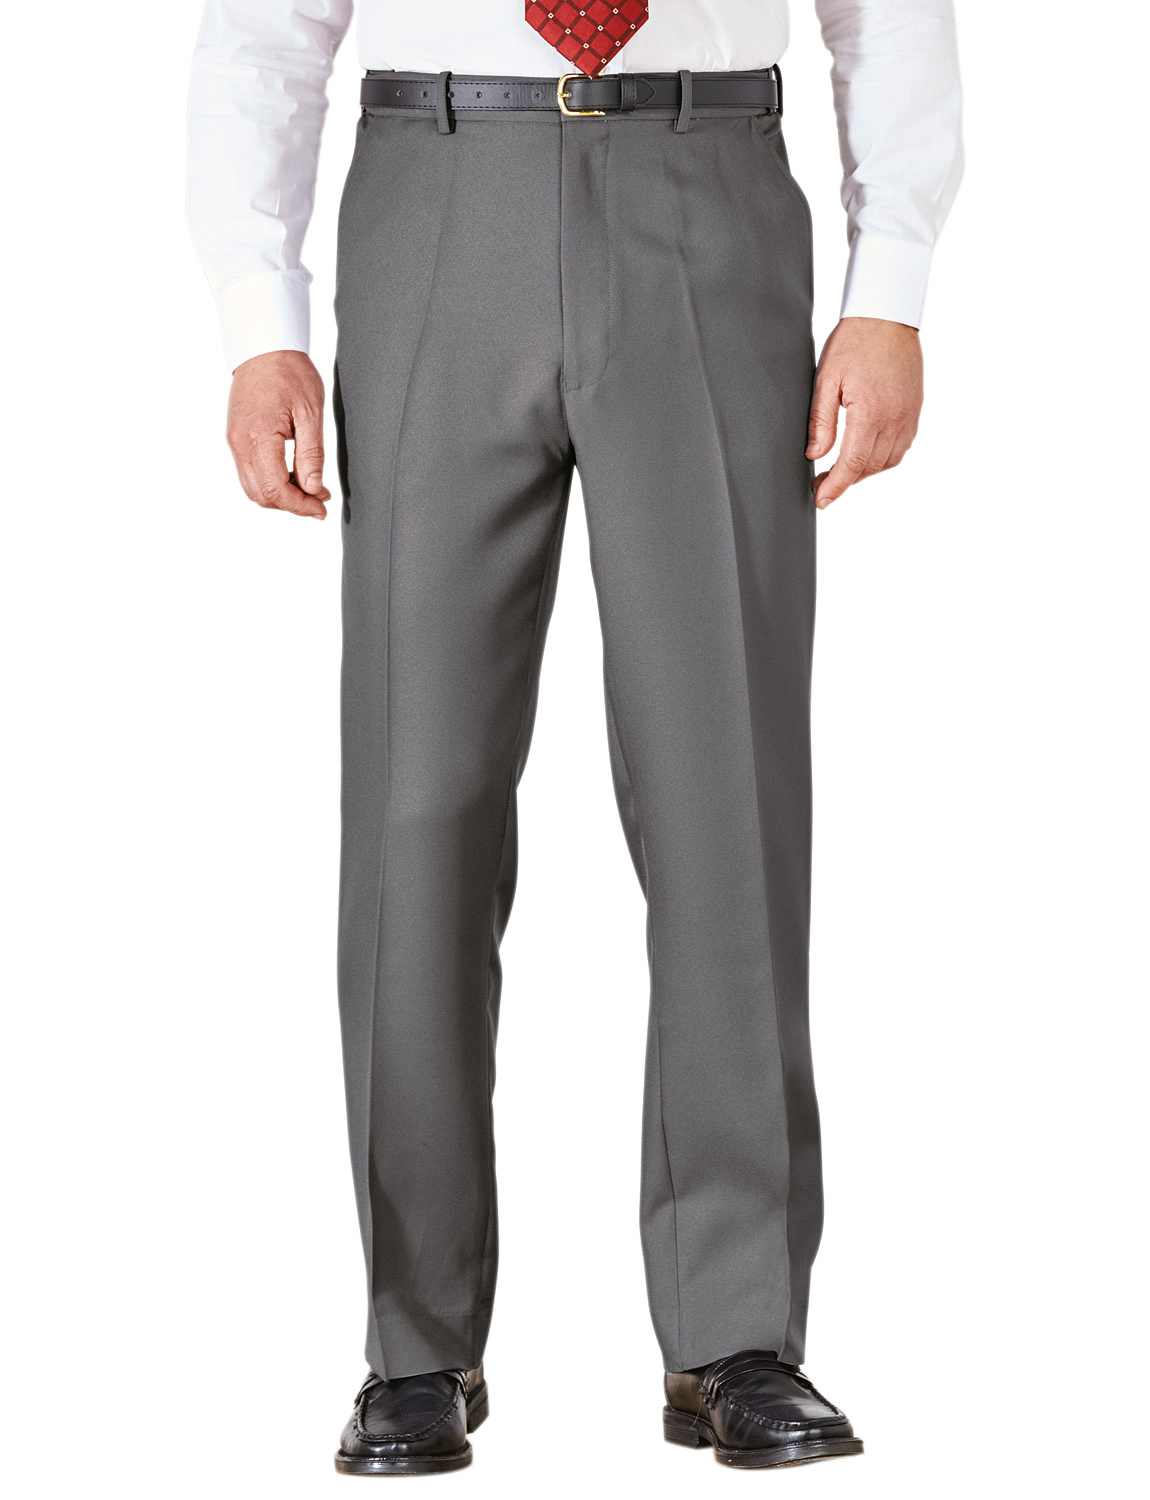 Mens-Stretch-Waist-Formal-Smart-Work-Trouser-Pants thumbnail 10